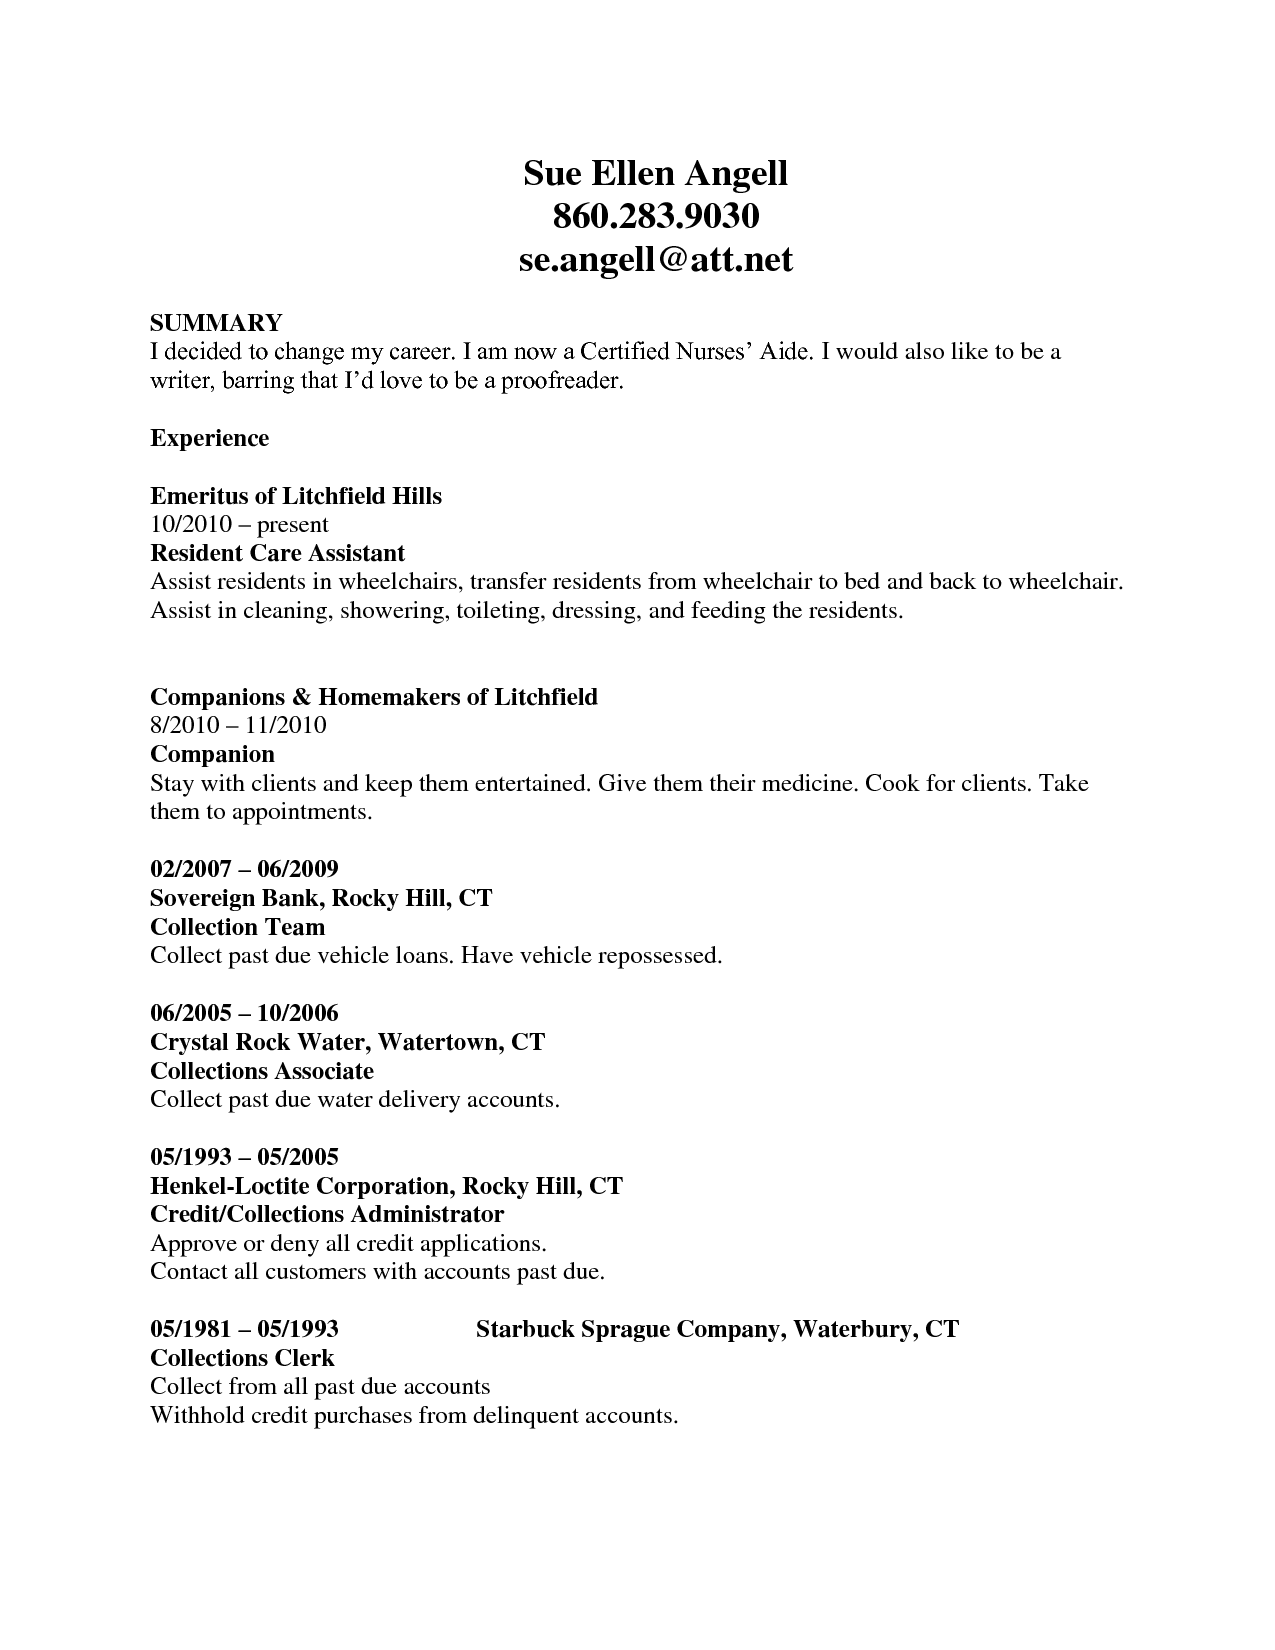 qualifications summary resume cna